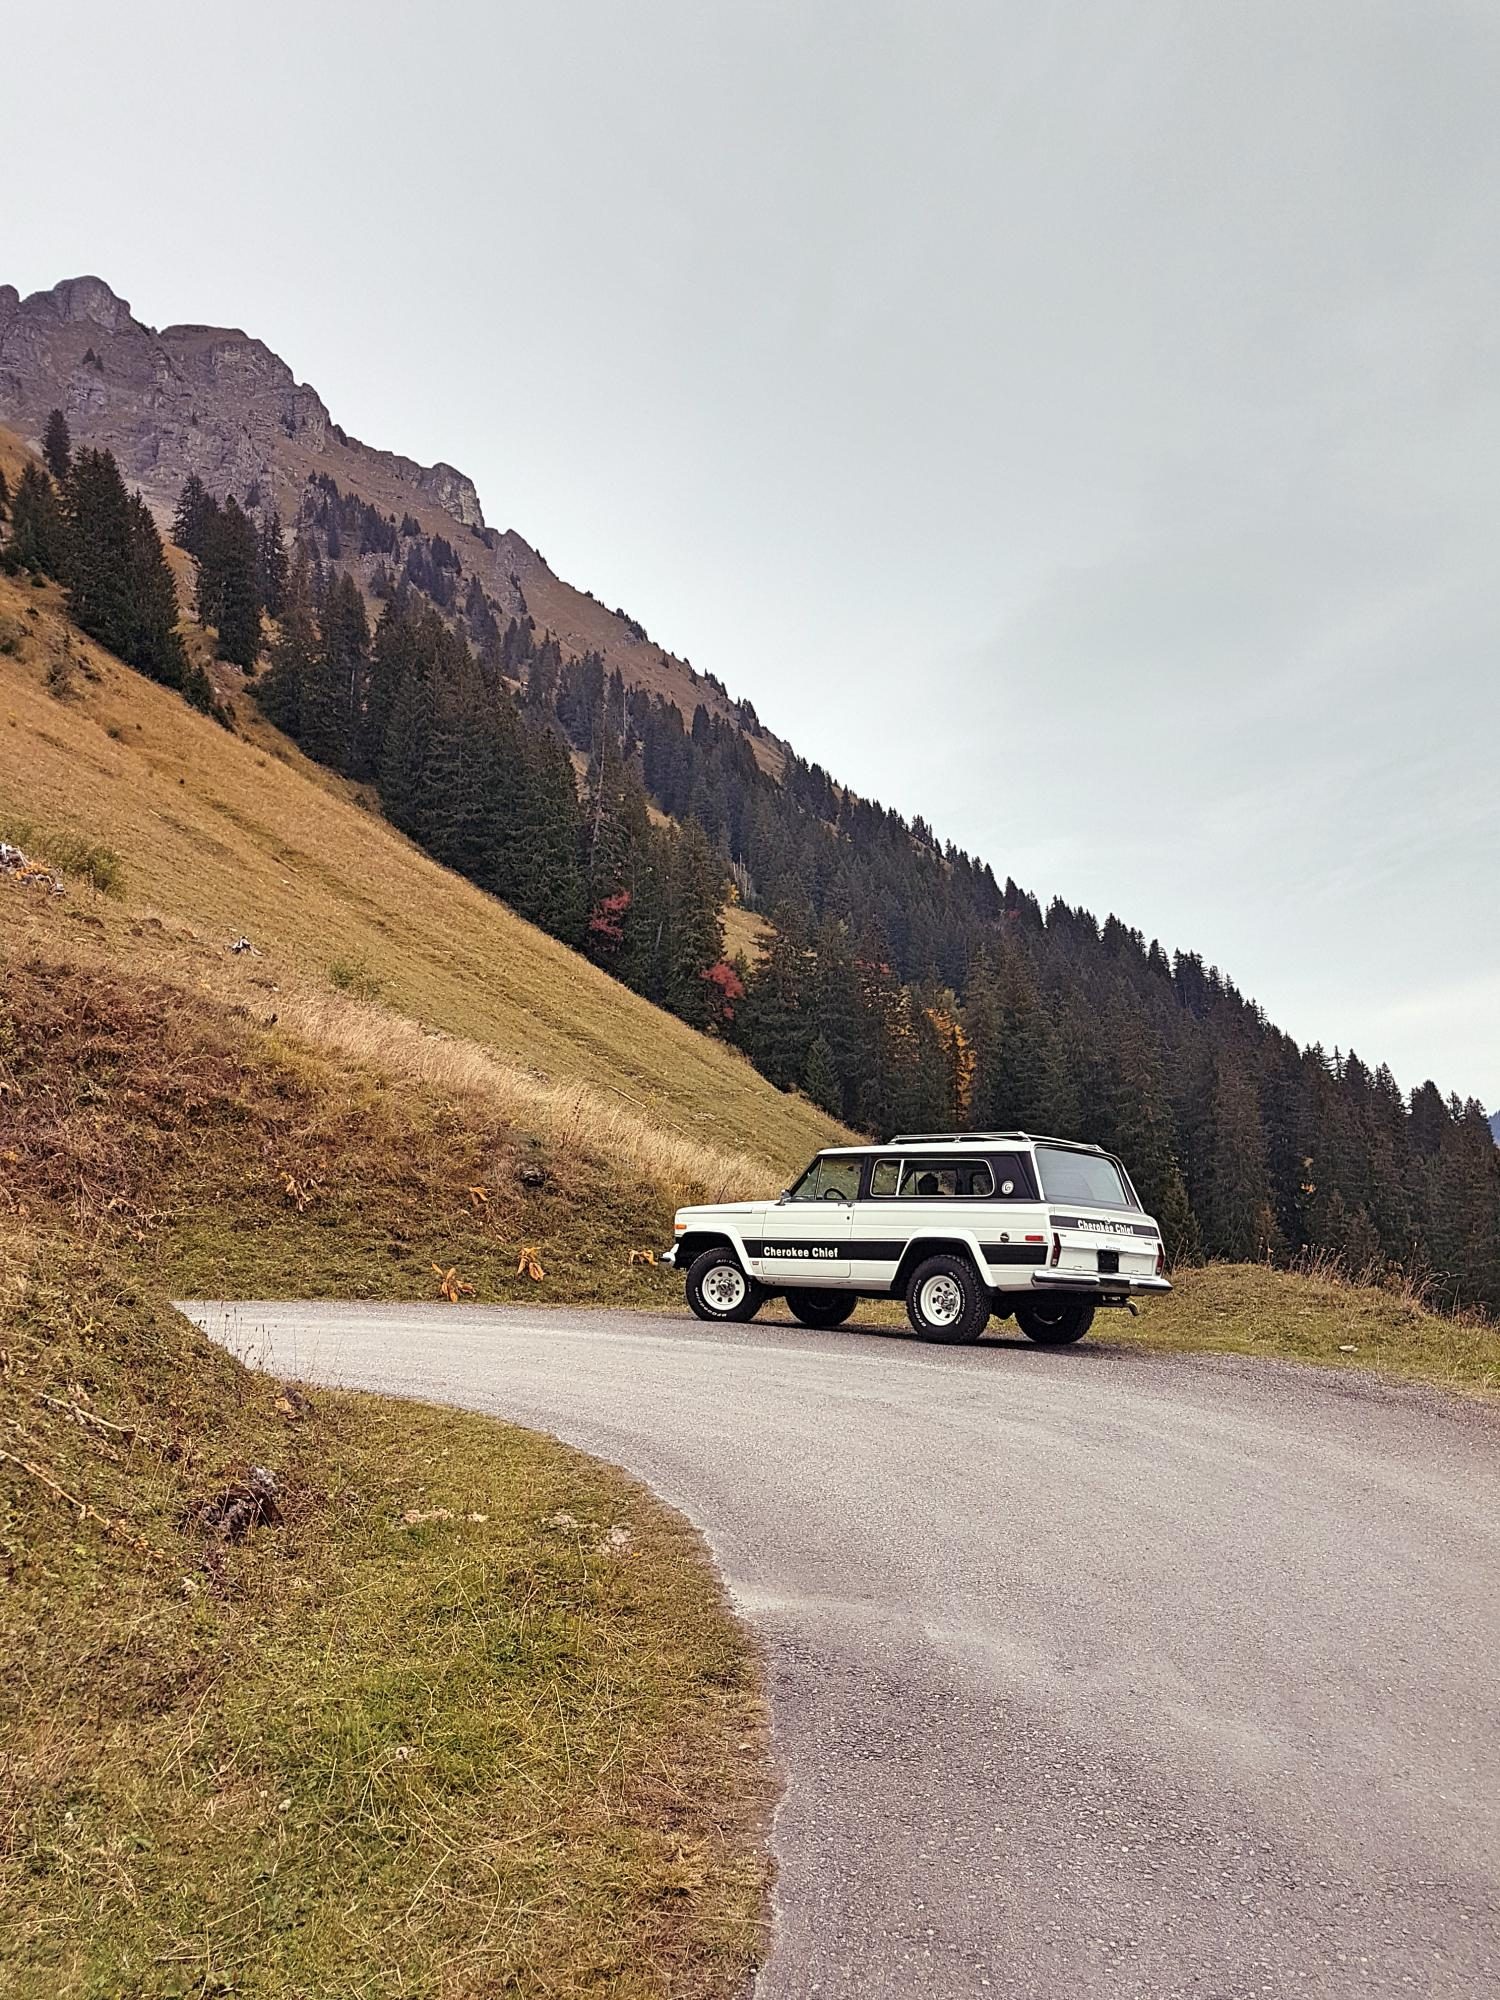 jeep-cherokee-chief-1978-shooting-morgins-switzerland-33.jpg